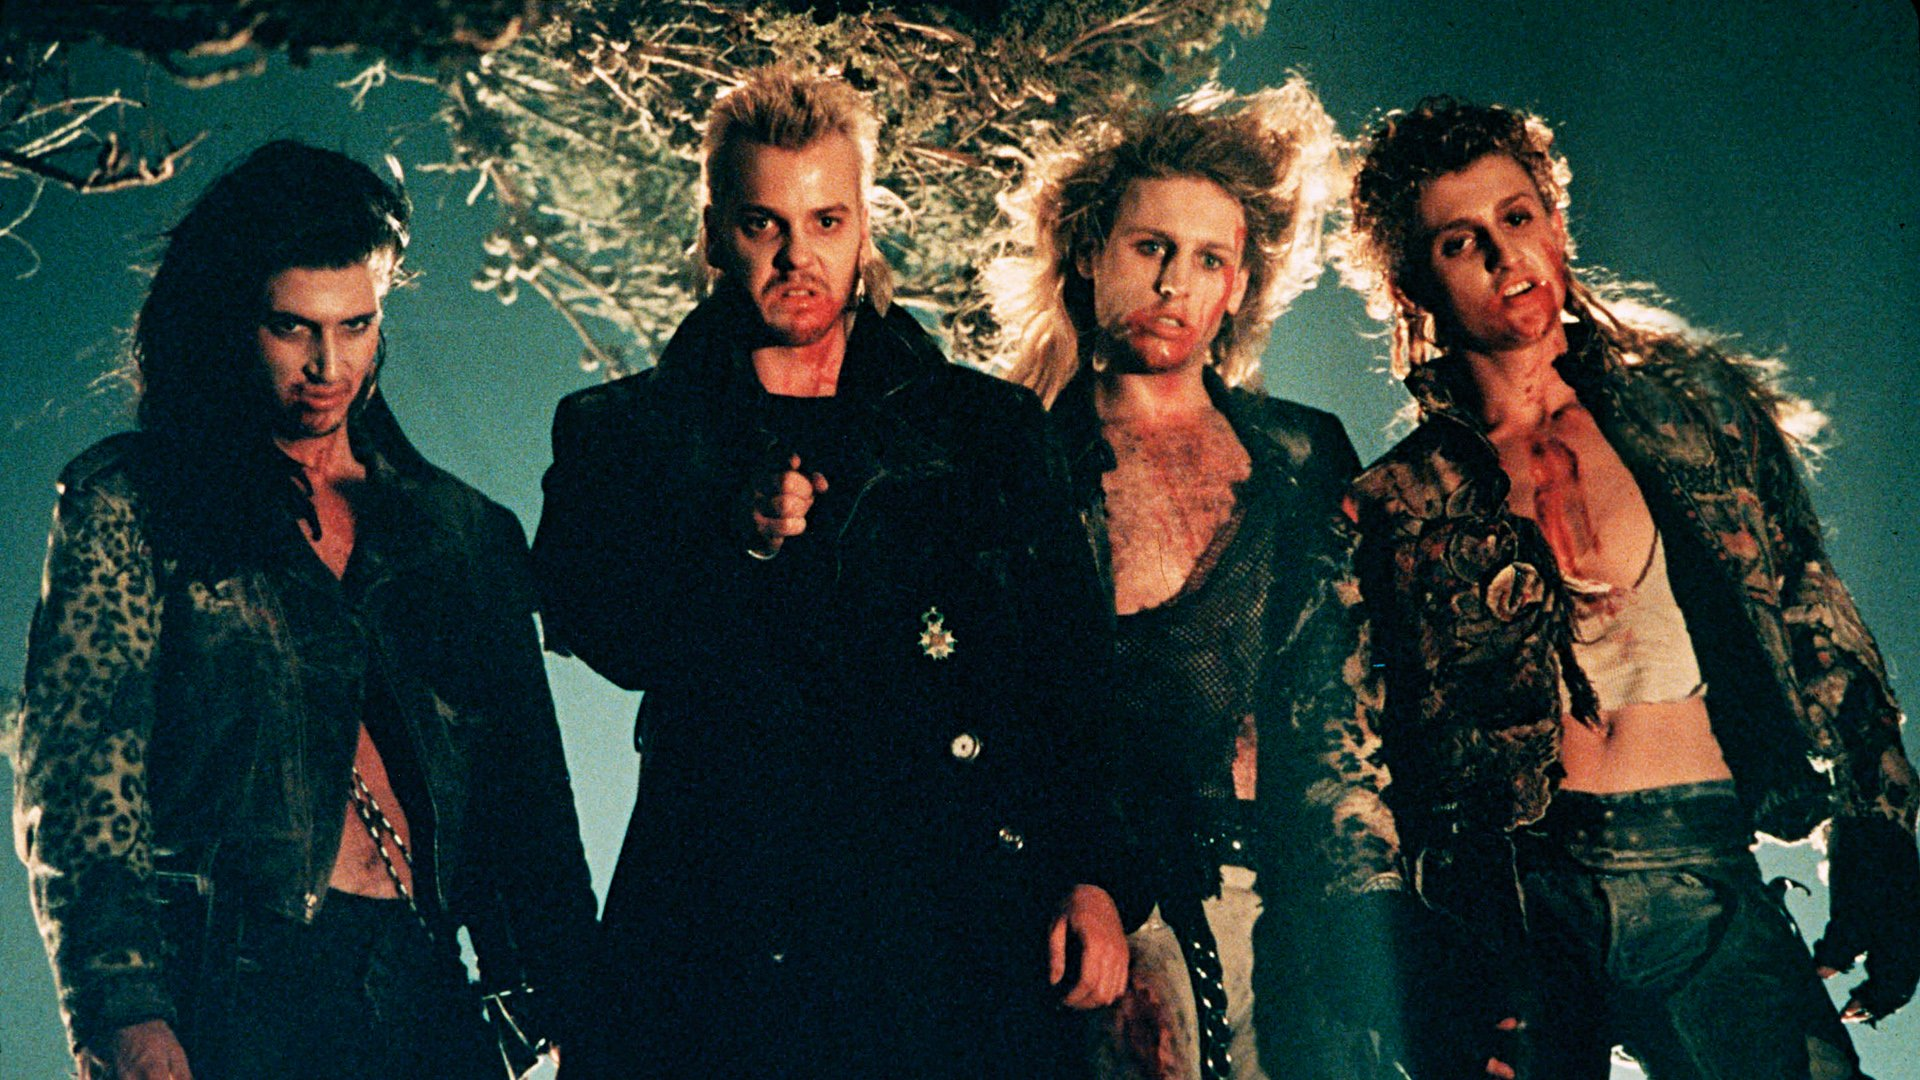 The Lost Boys 1987 Bald Move 1920x1080